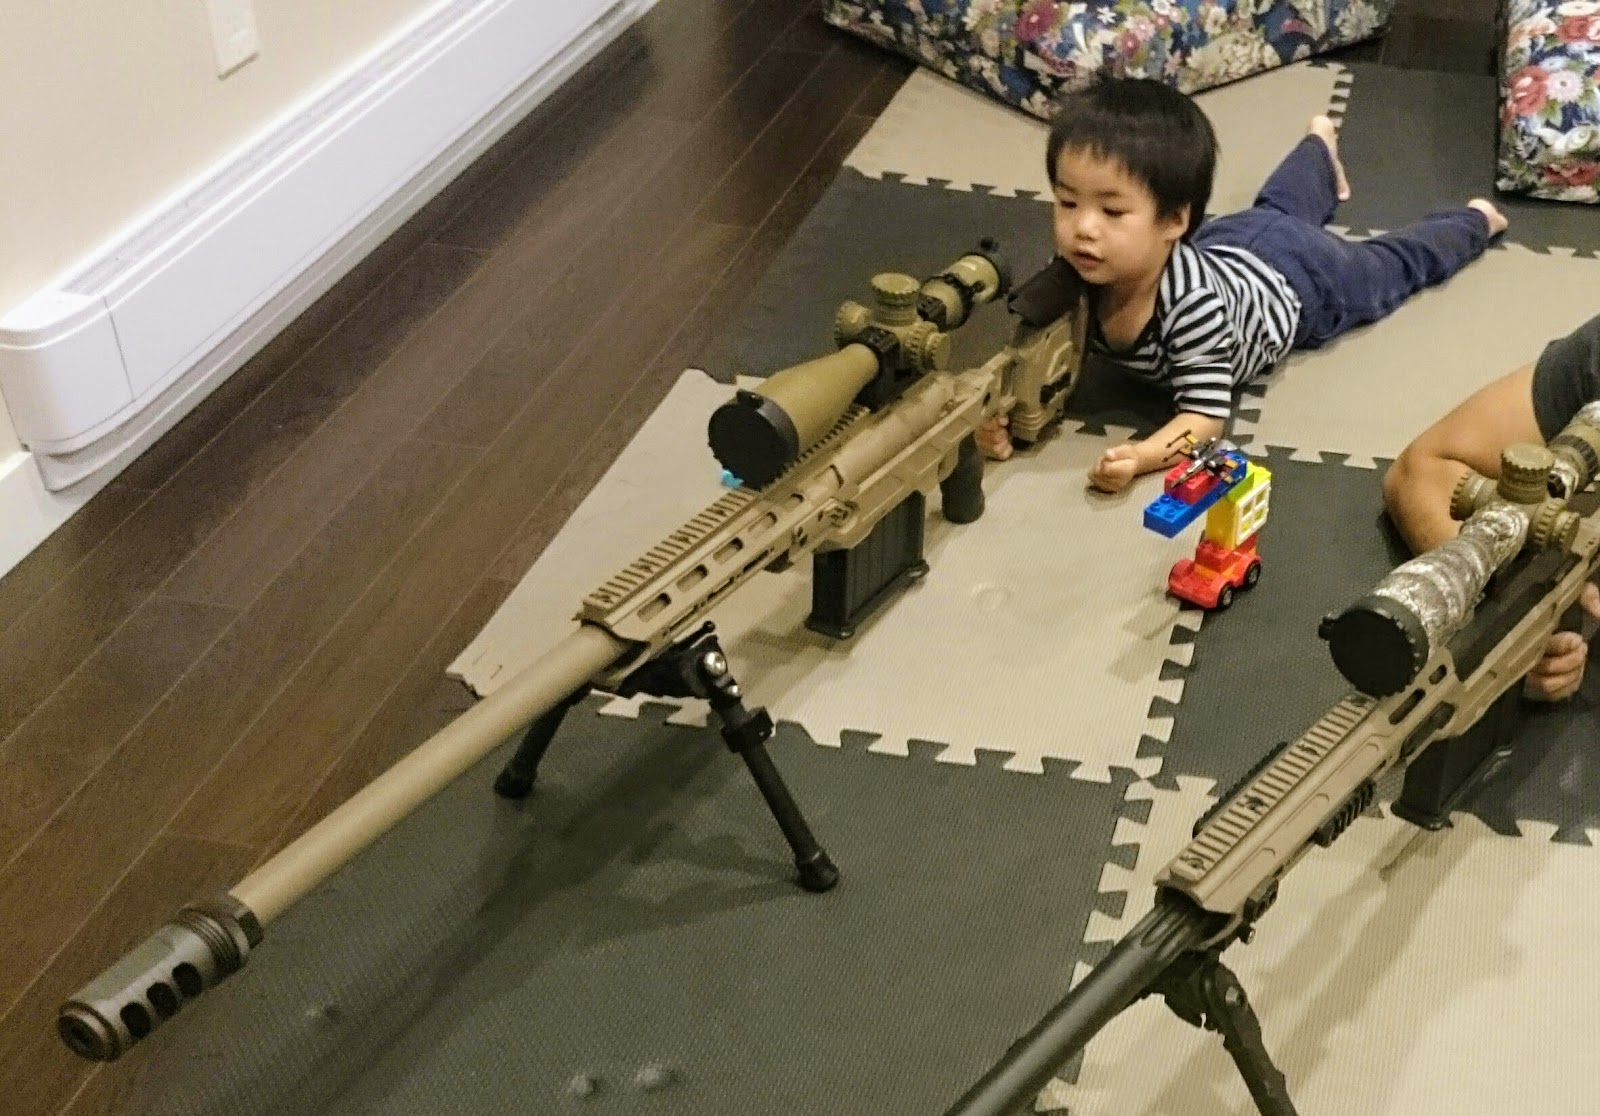 Mister Donut's Firearms Blog: Cadex CDX-50 TREMOR and PGW LRT-3